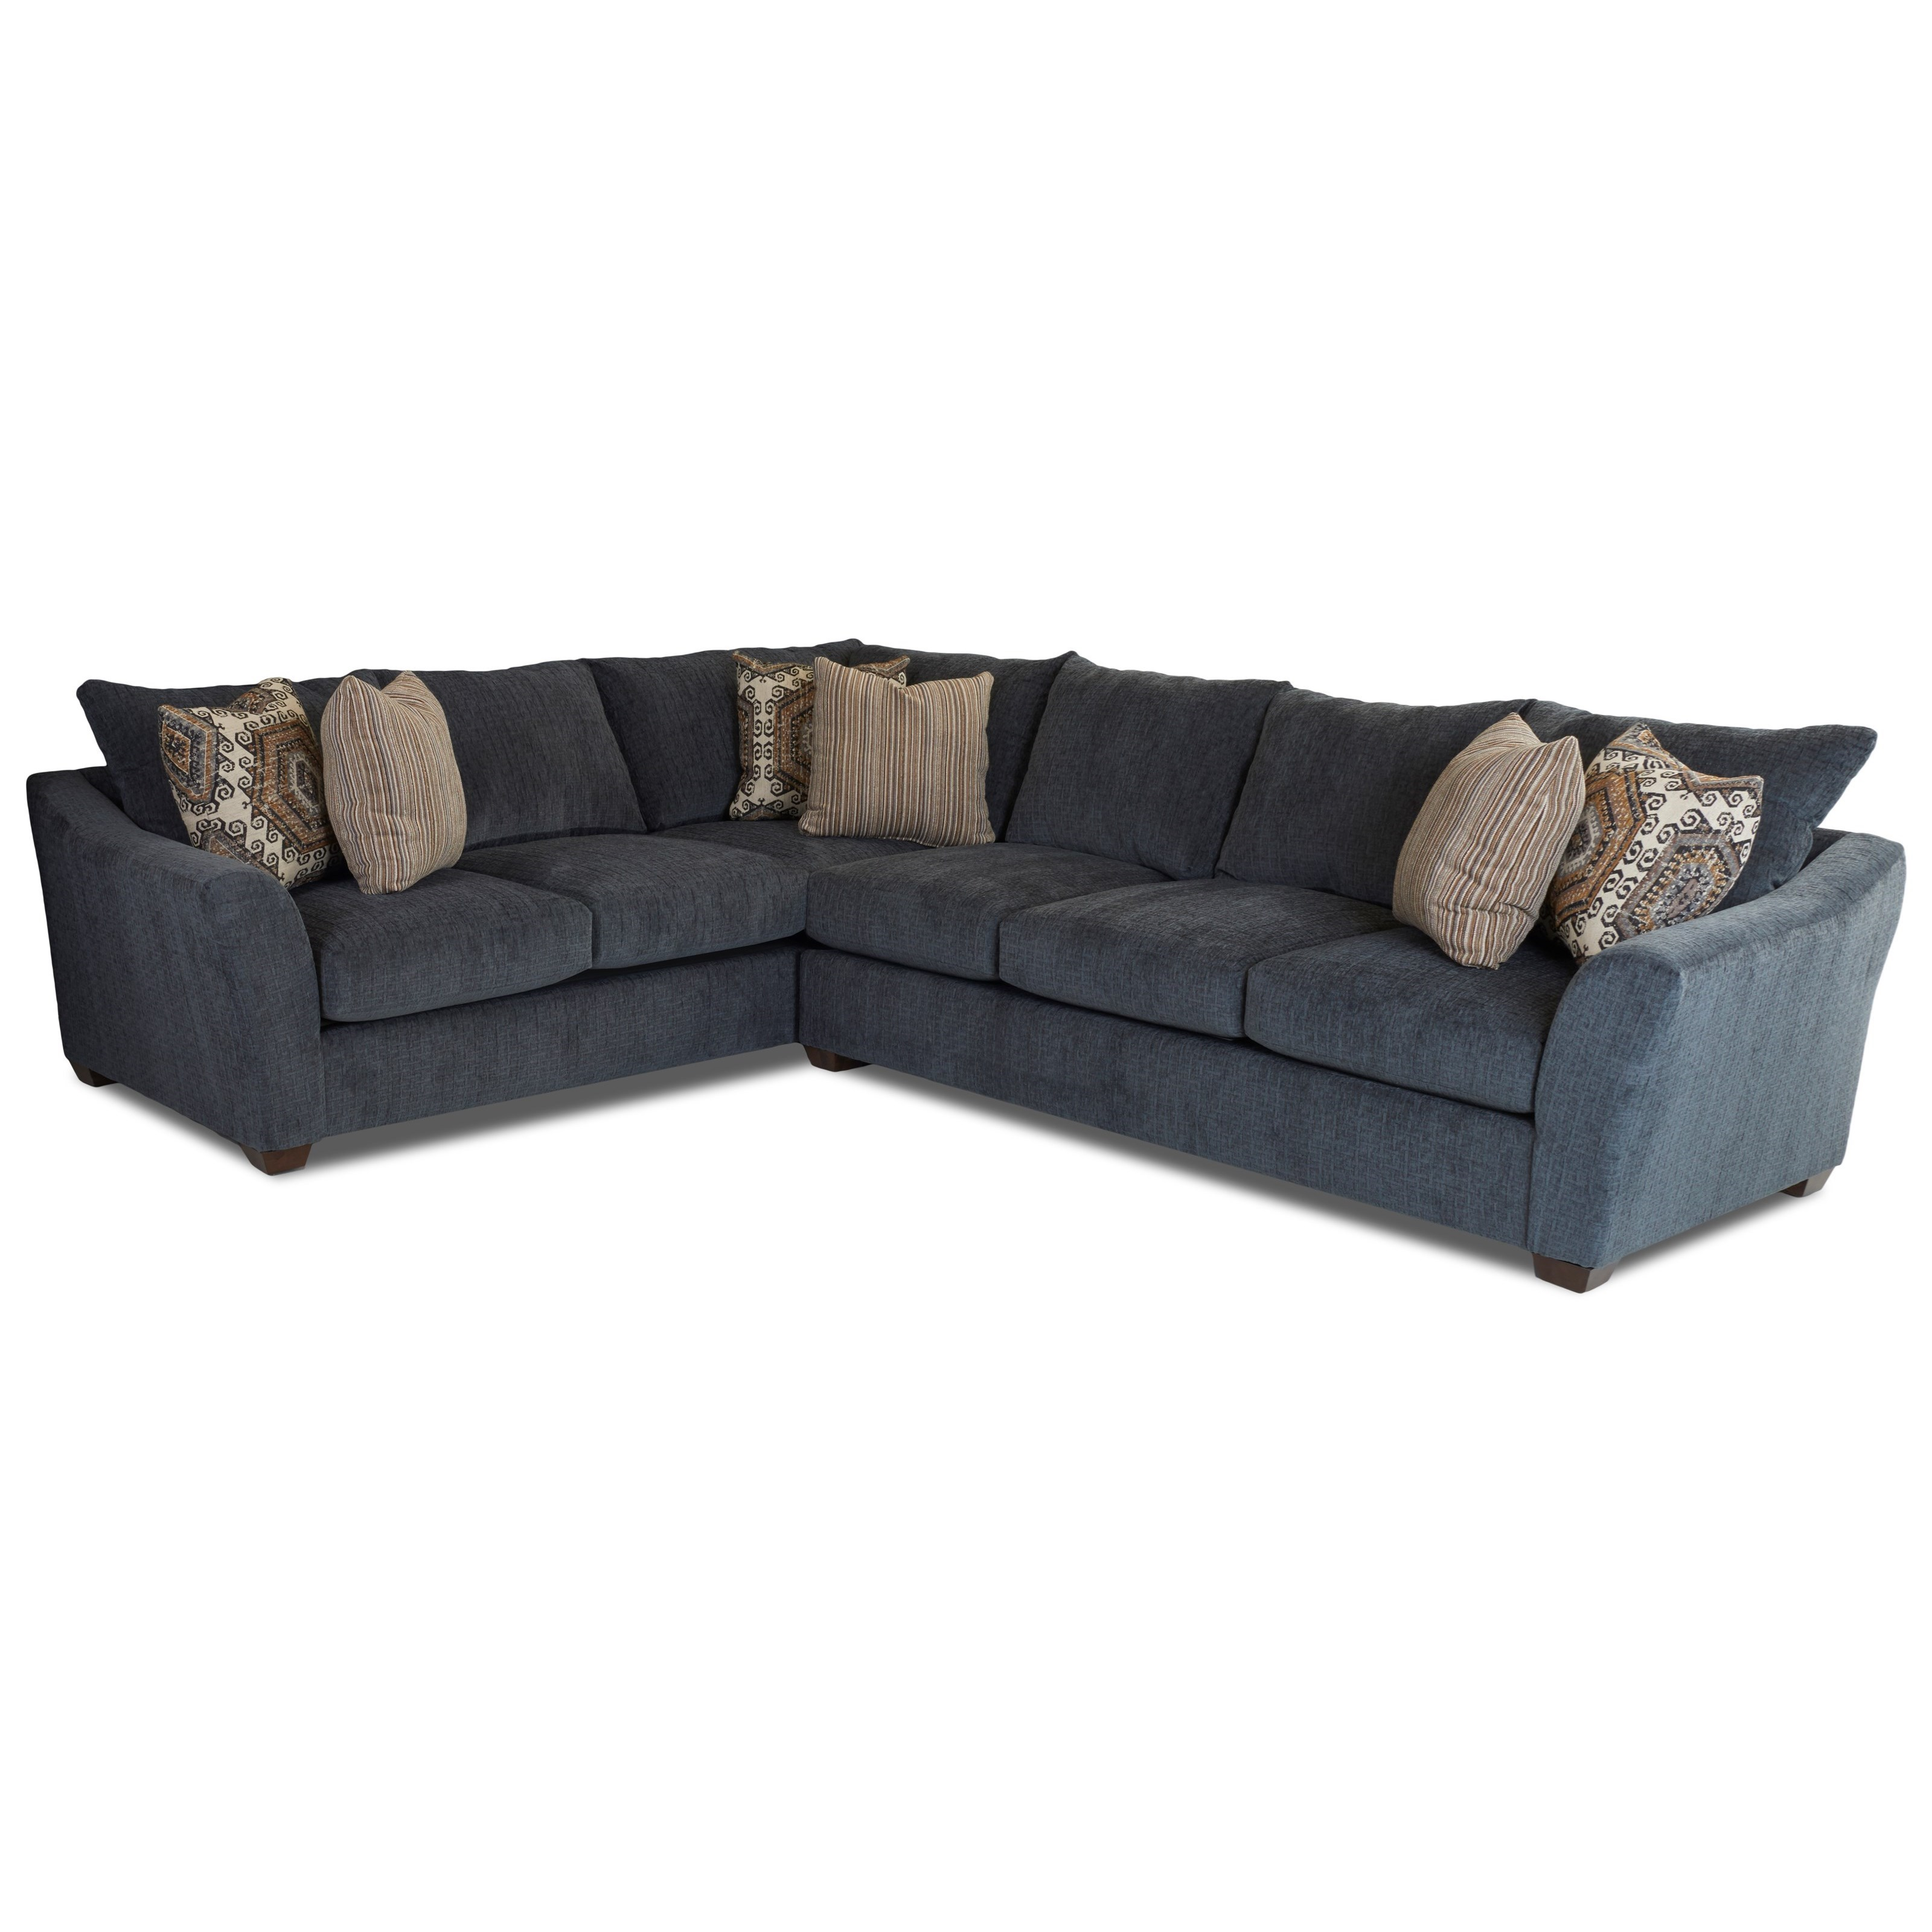 Two Piece Sectional Sofa with Left Corner Sofa by Klaussner | Wolf ...